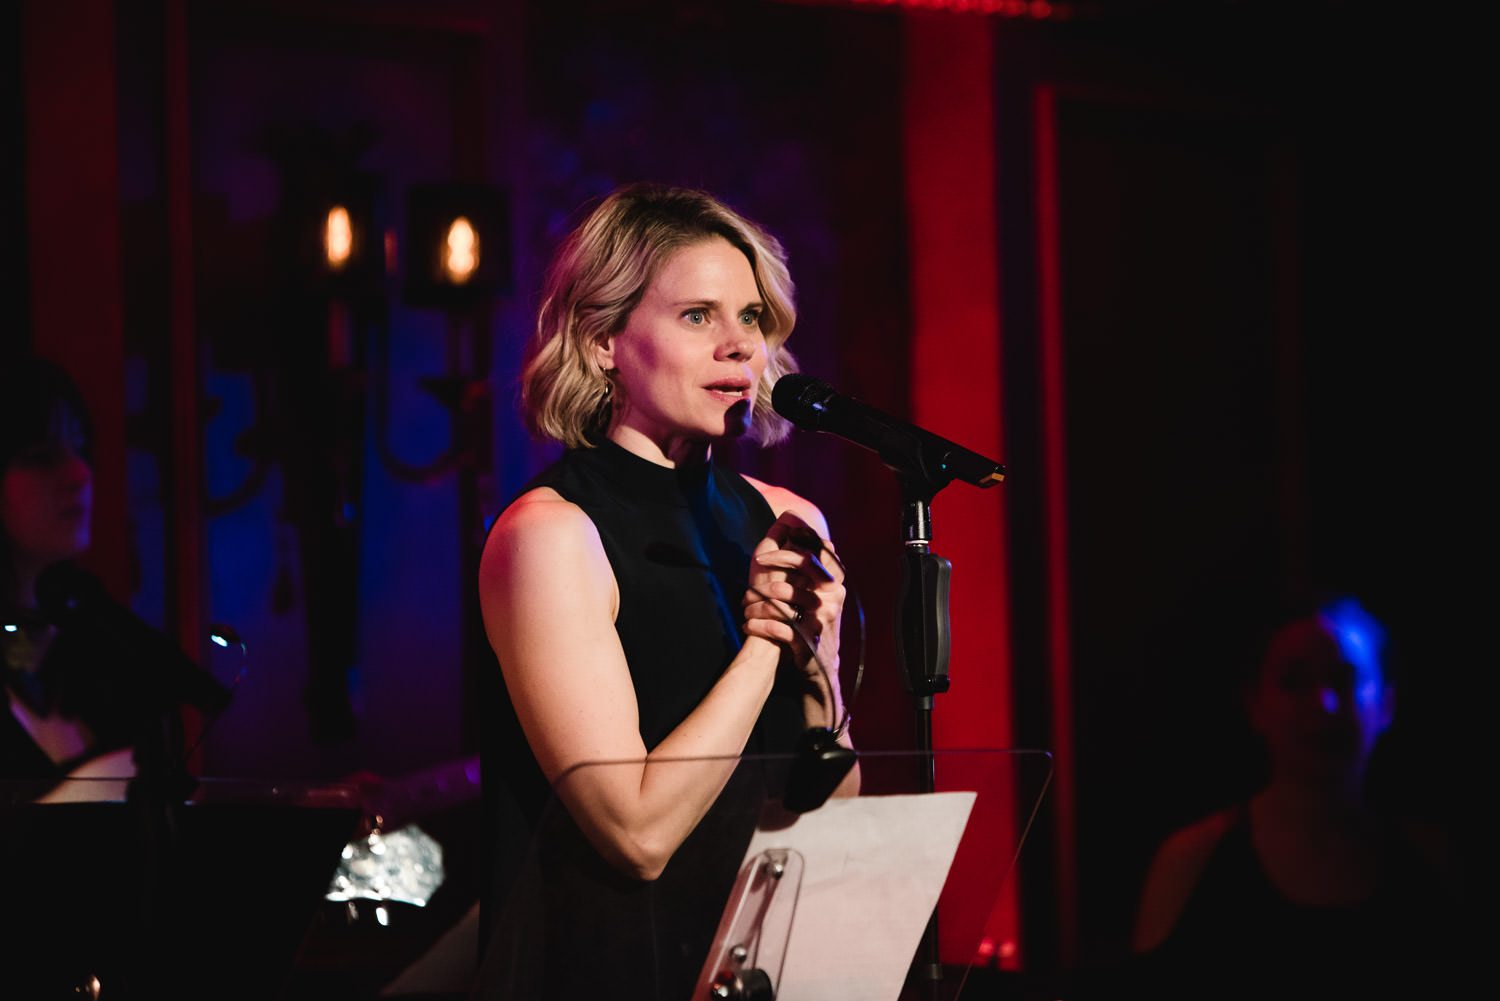 Celia Keenan-Bolger hosts a concert at 54 Below.